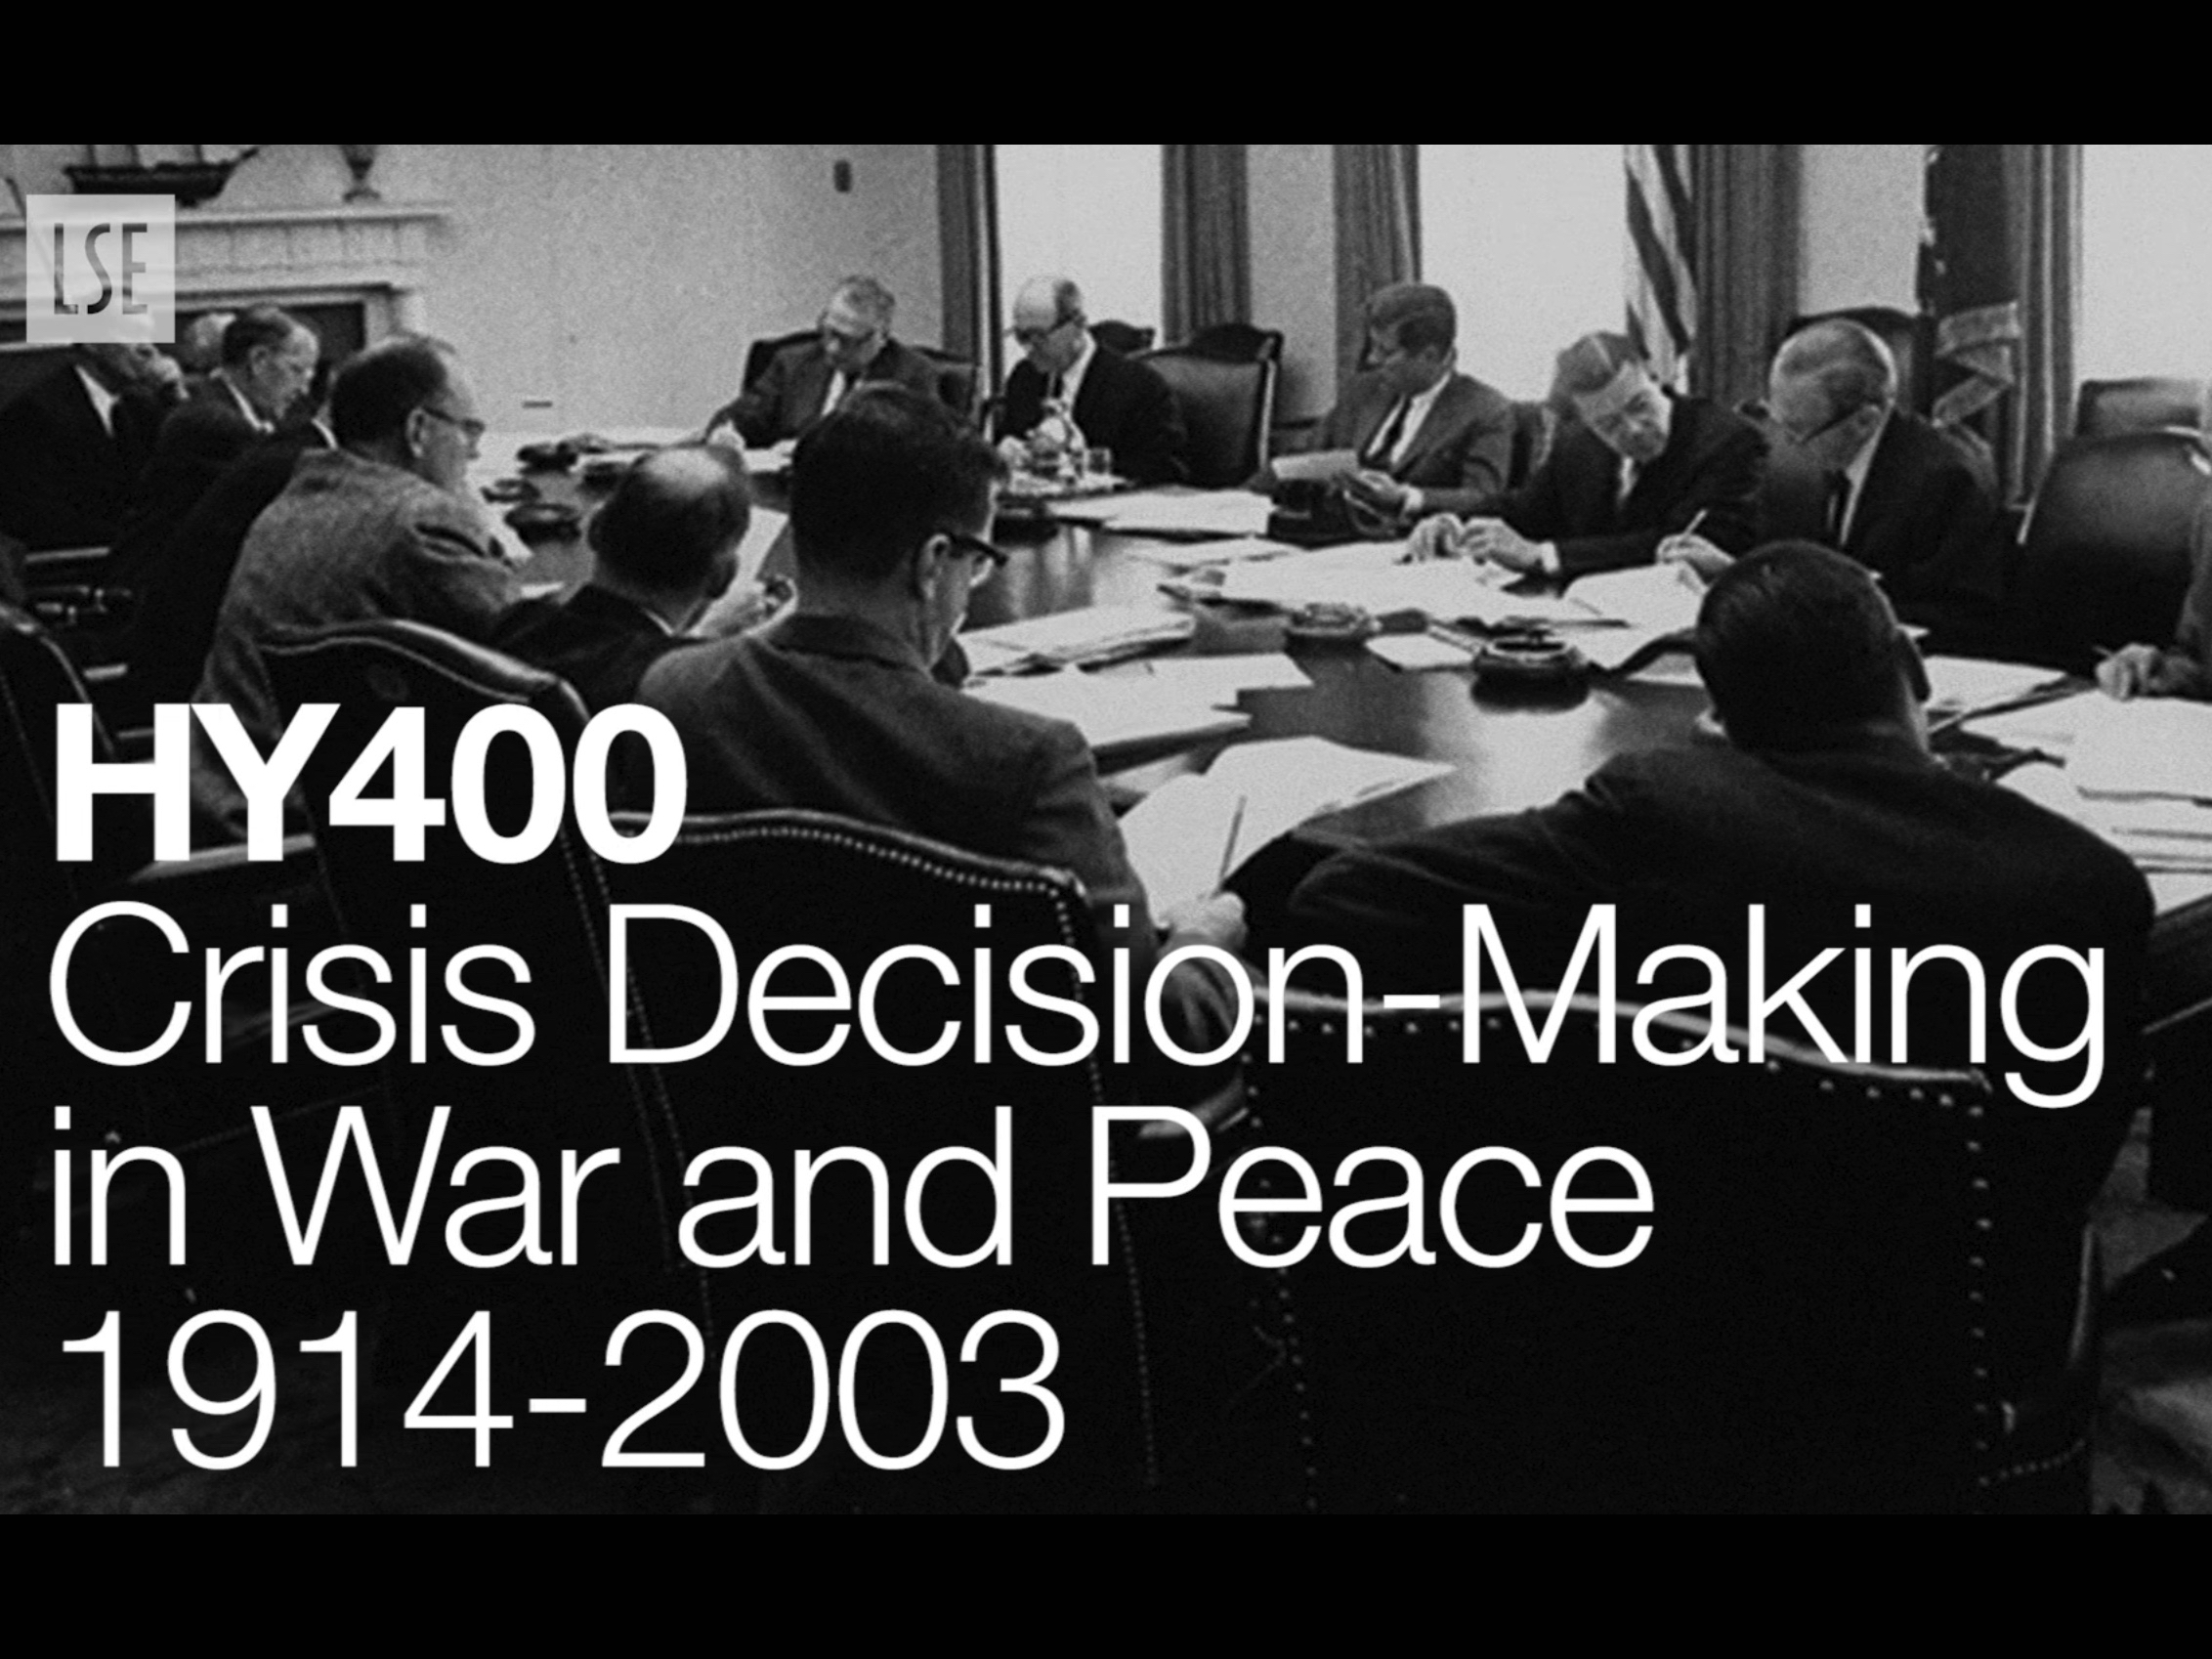 HY400: Crisis Decision-Making in War and Peace 1914-2003